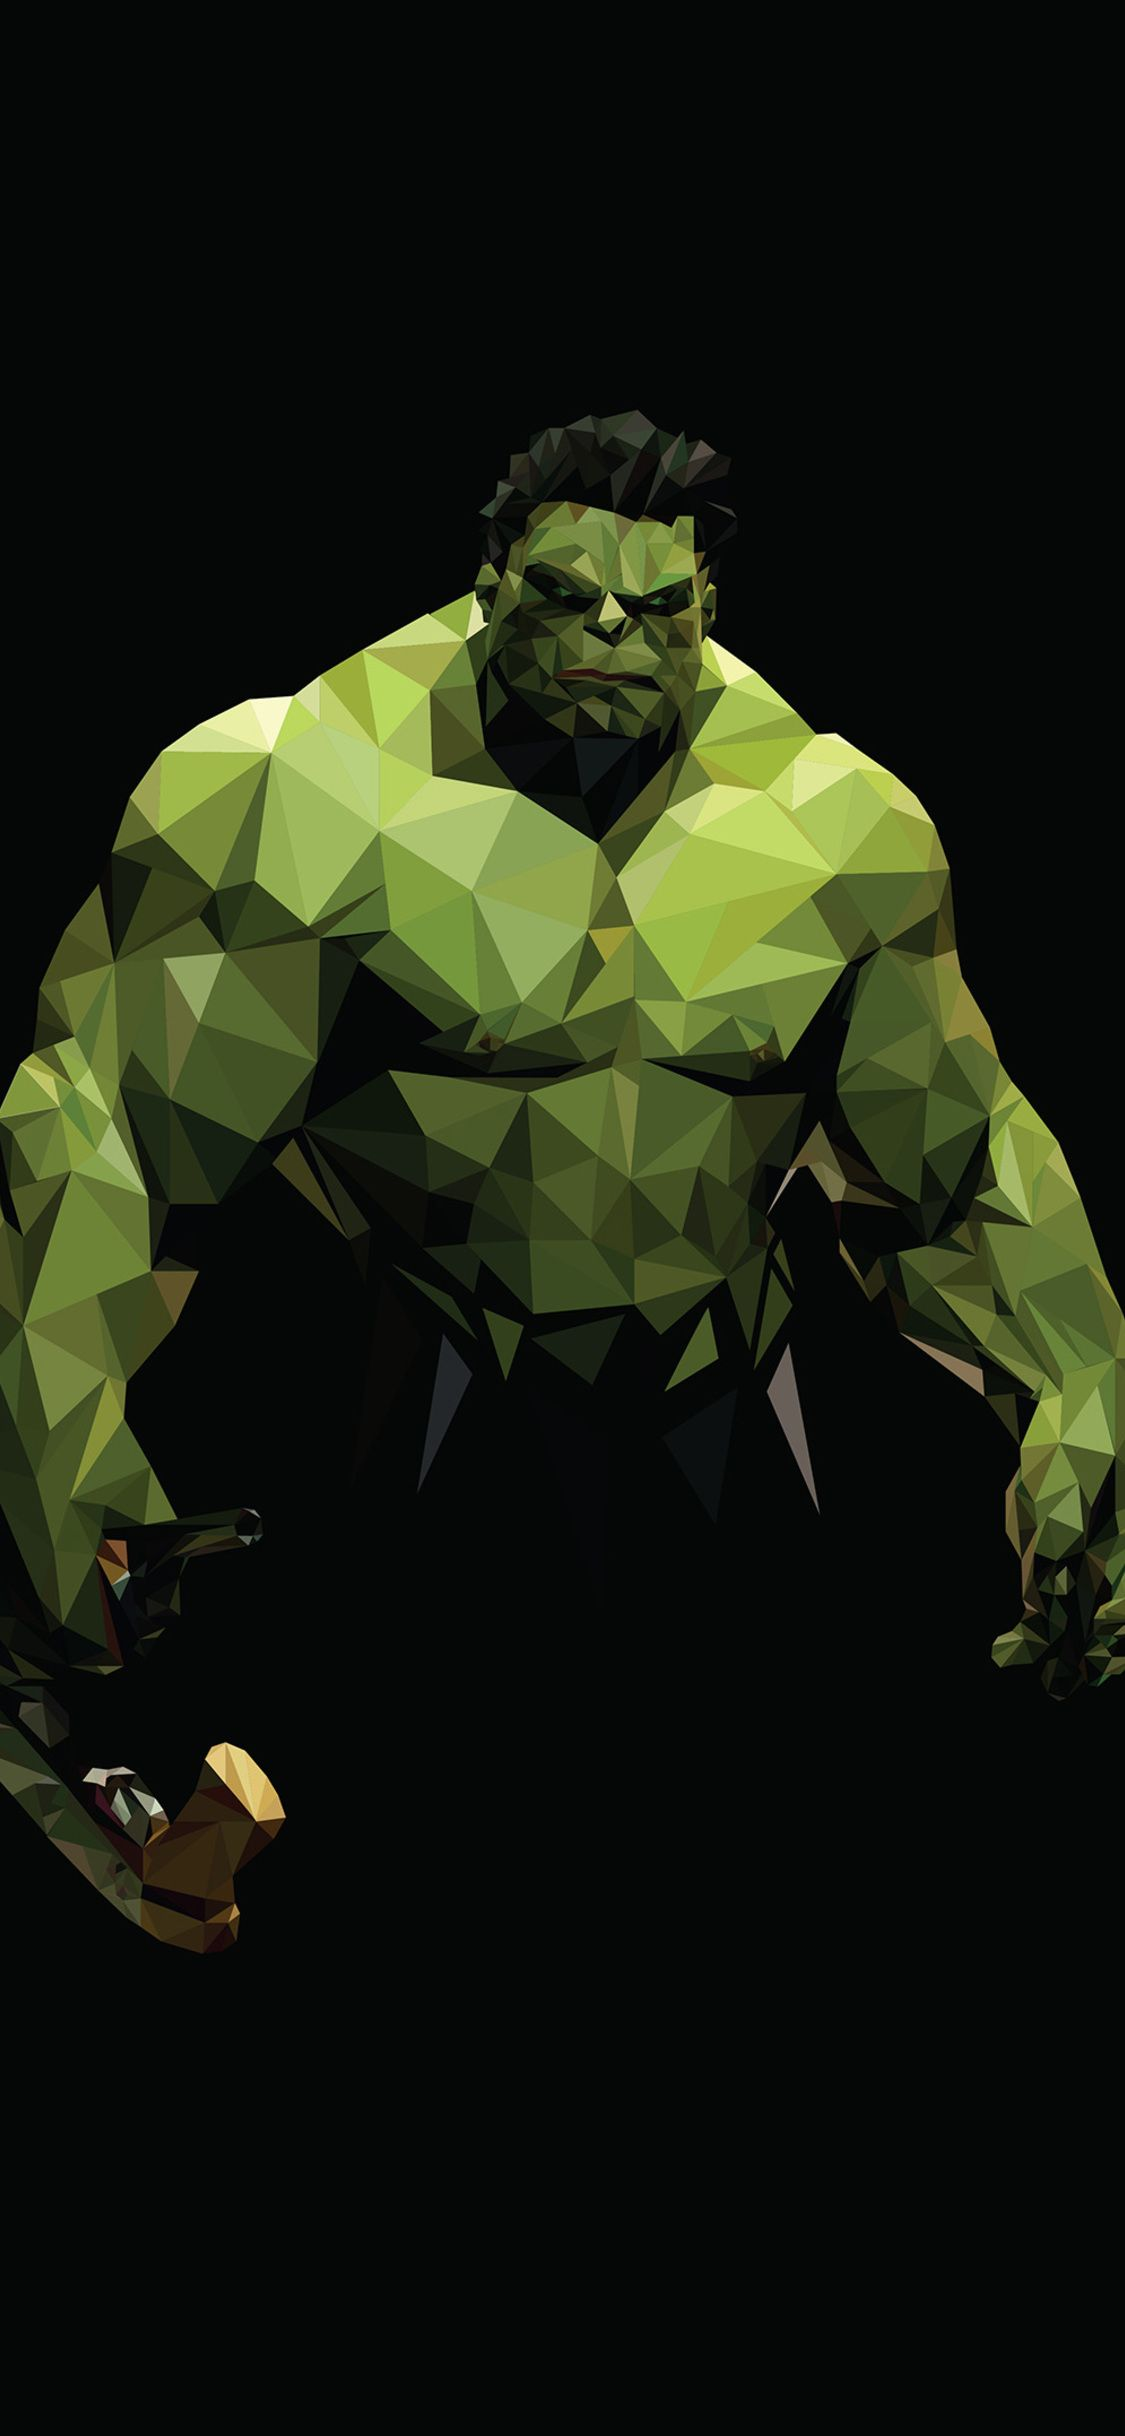 1125x2436 Hulk Polyart Iphone Xs Iphone 10 Iphone X Hd 4k Wallpapers Images Backgrounds Photos And Pictures Marvel Comics Wallpaper Hulk Marvel Hulk Art